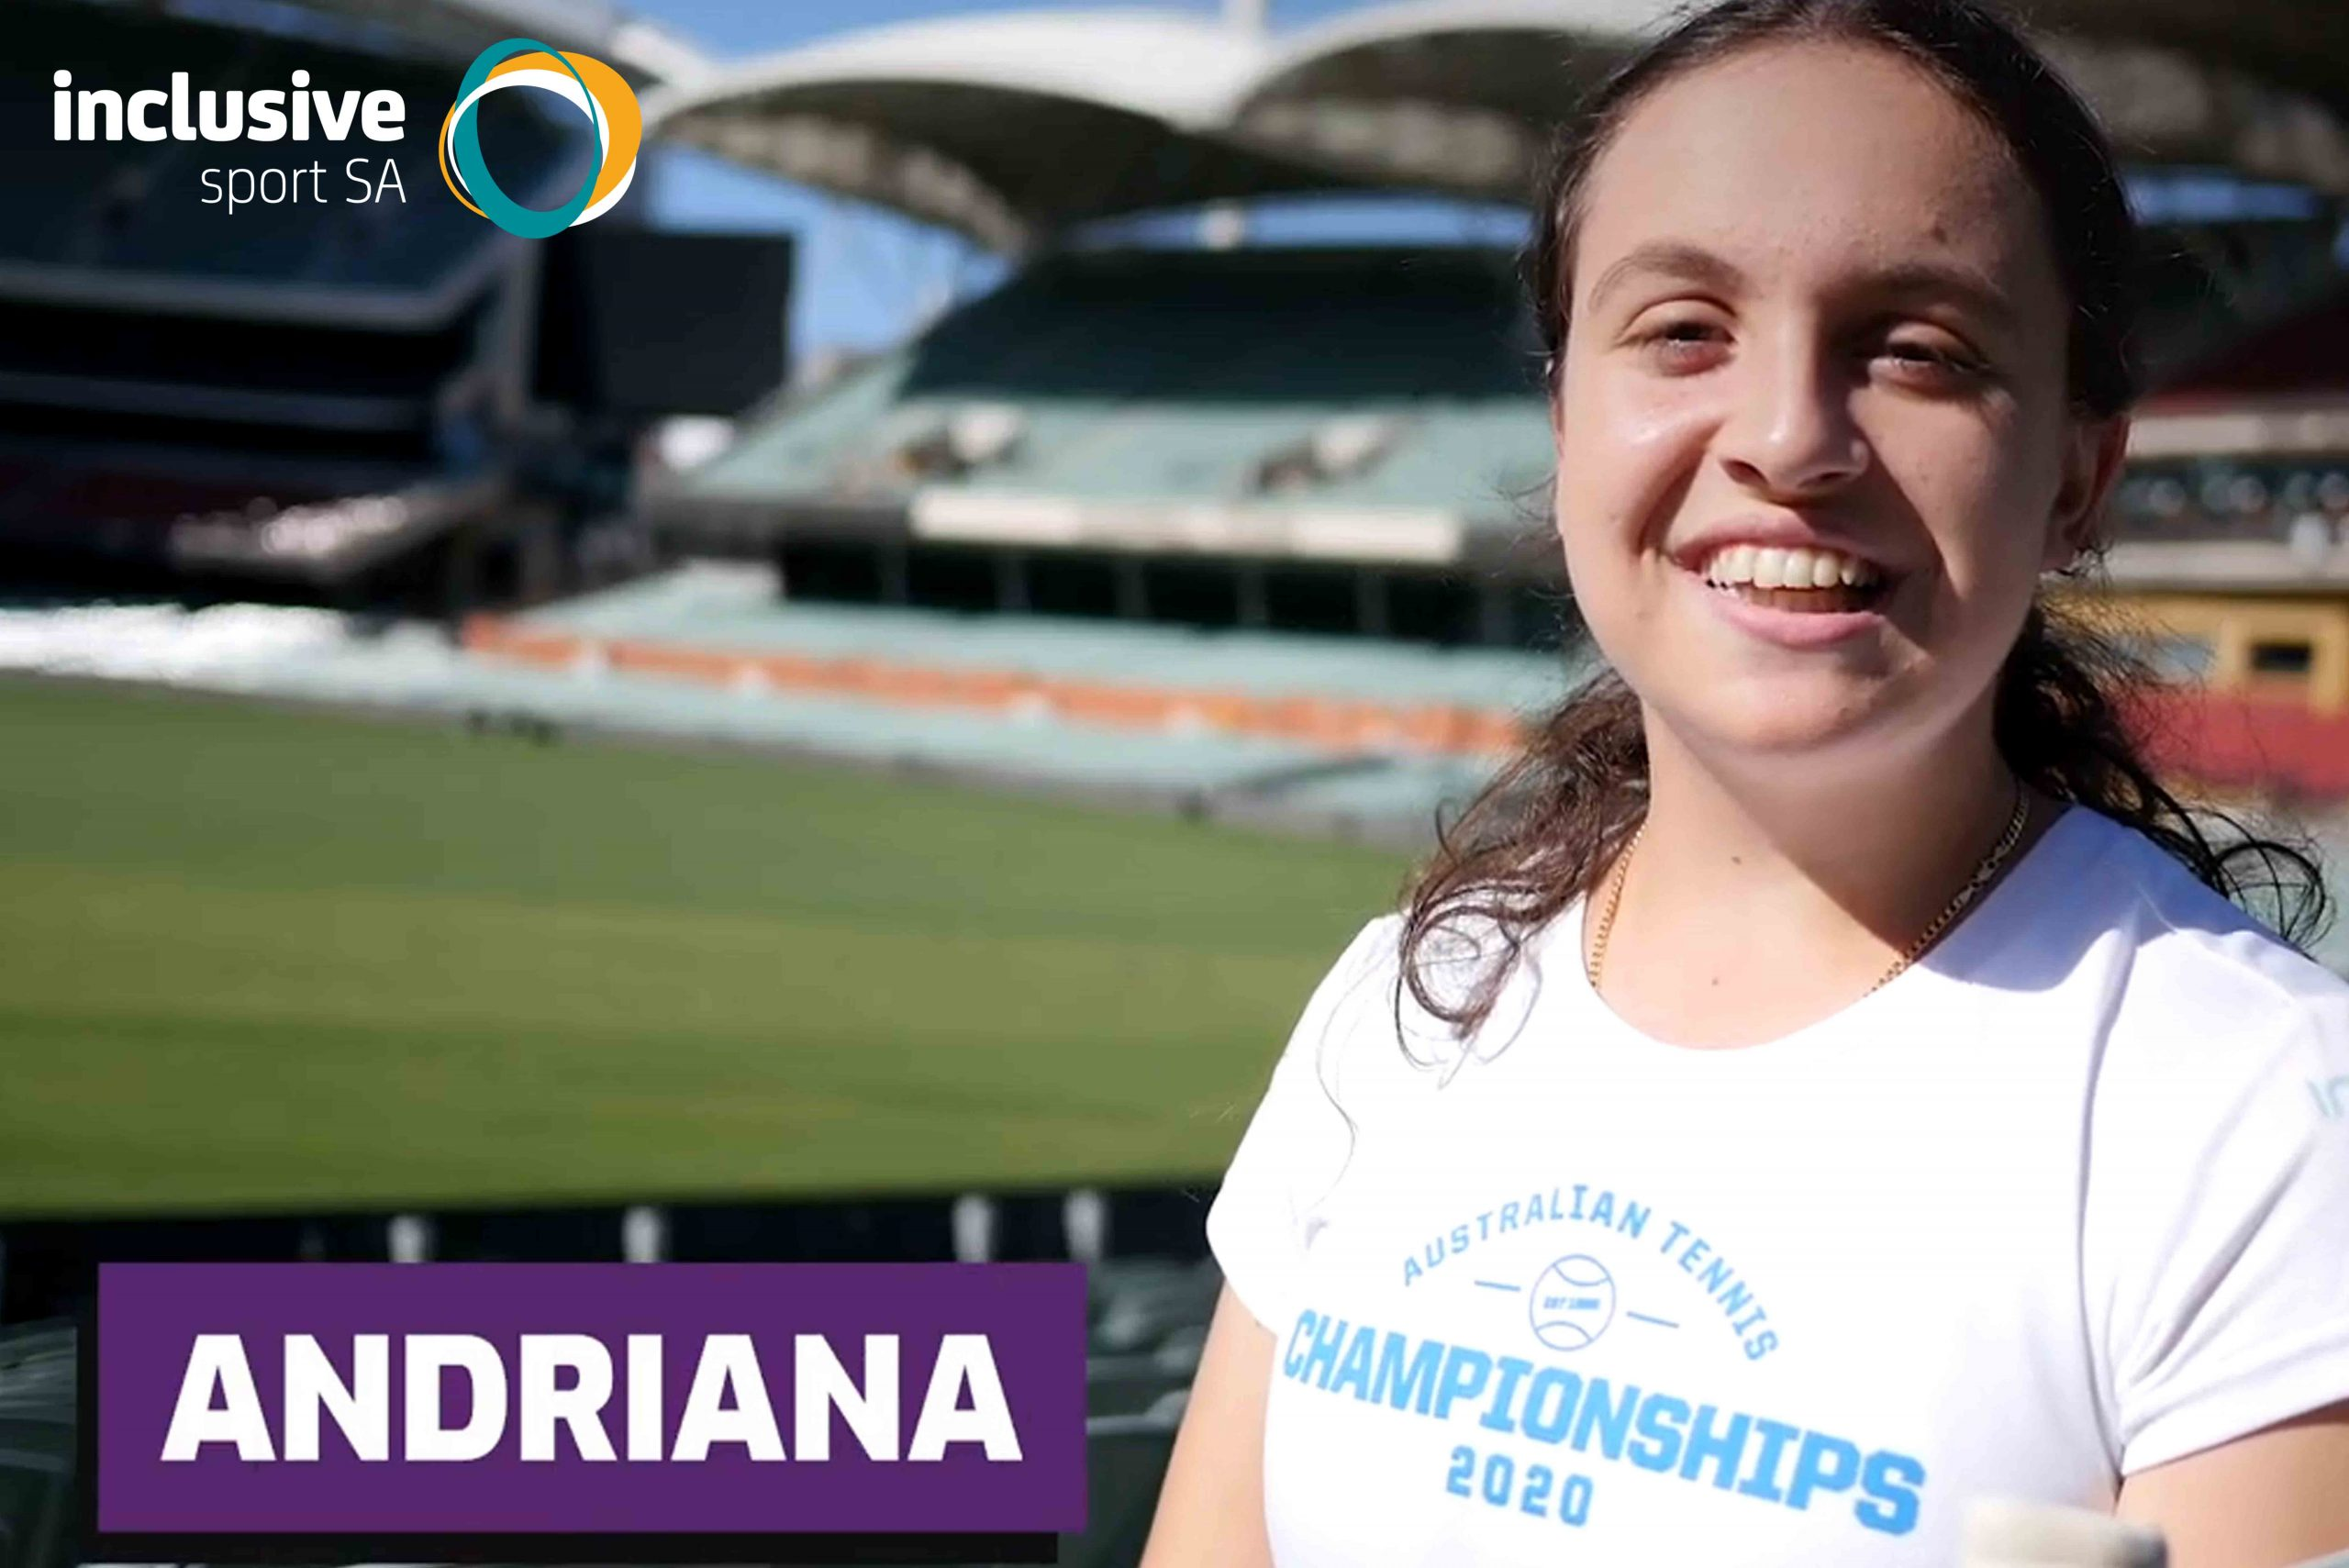 A teenage girl sits at the Adelaide Oval text reads that her name in Andriana. The Inclusive Sport SA logo appears in the top left corner.